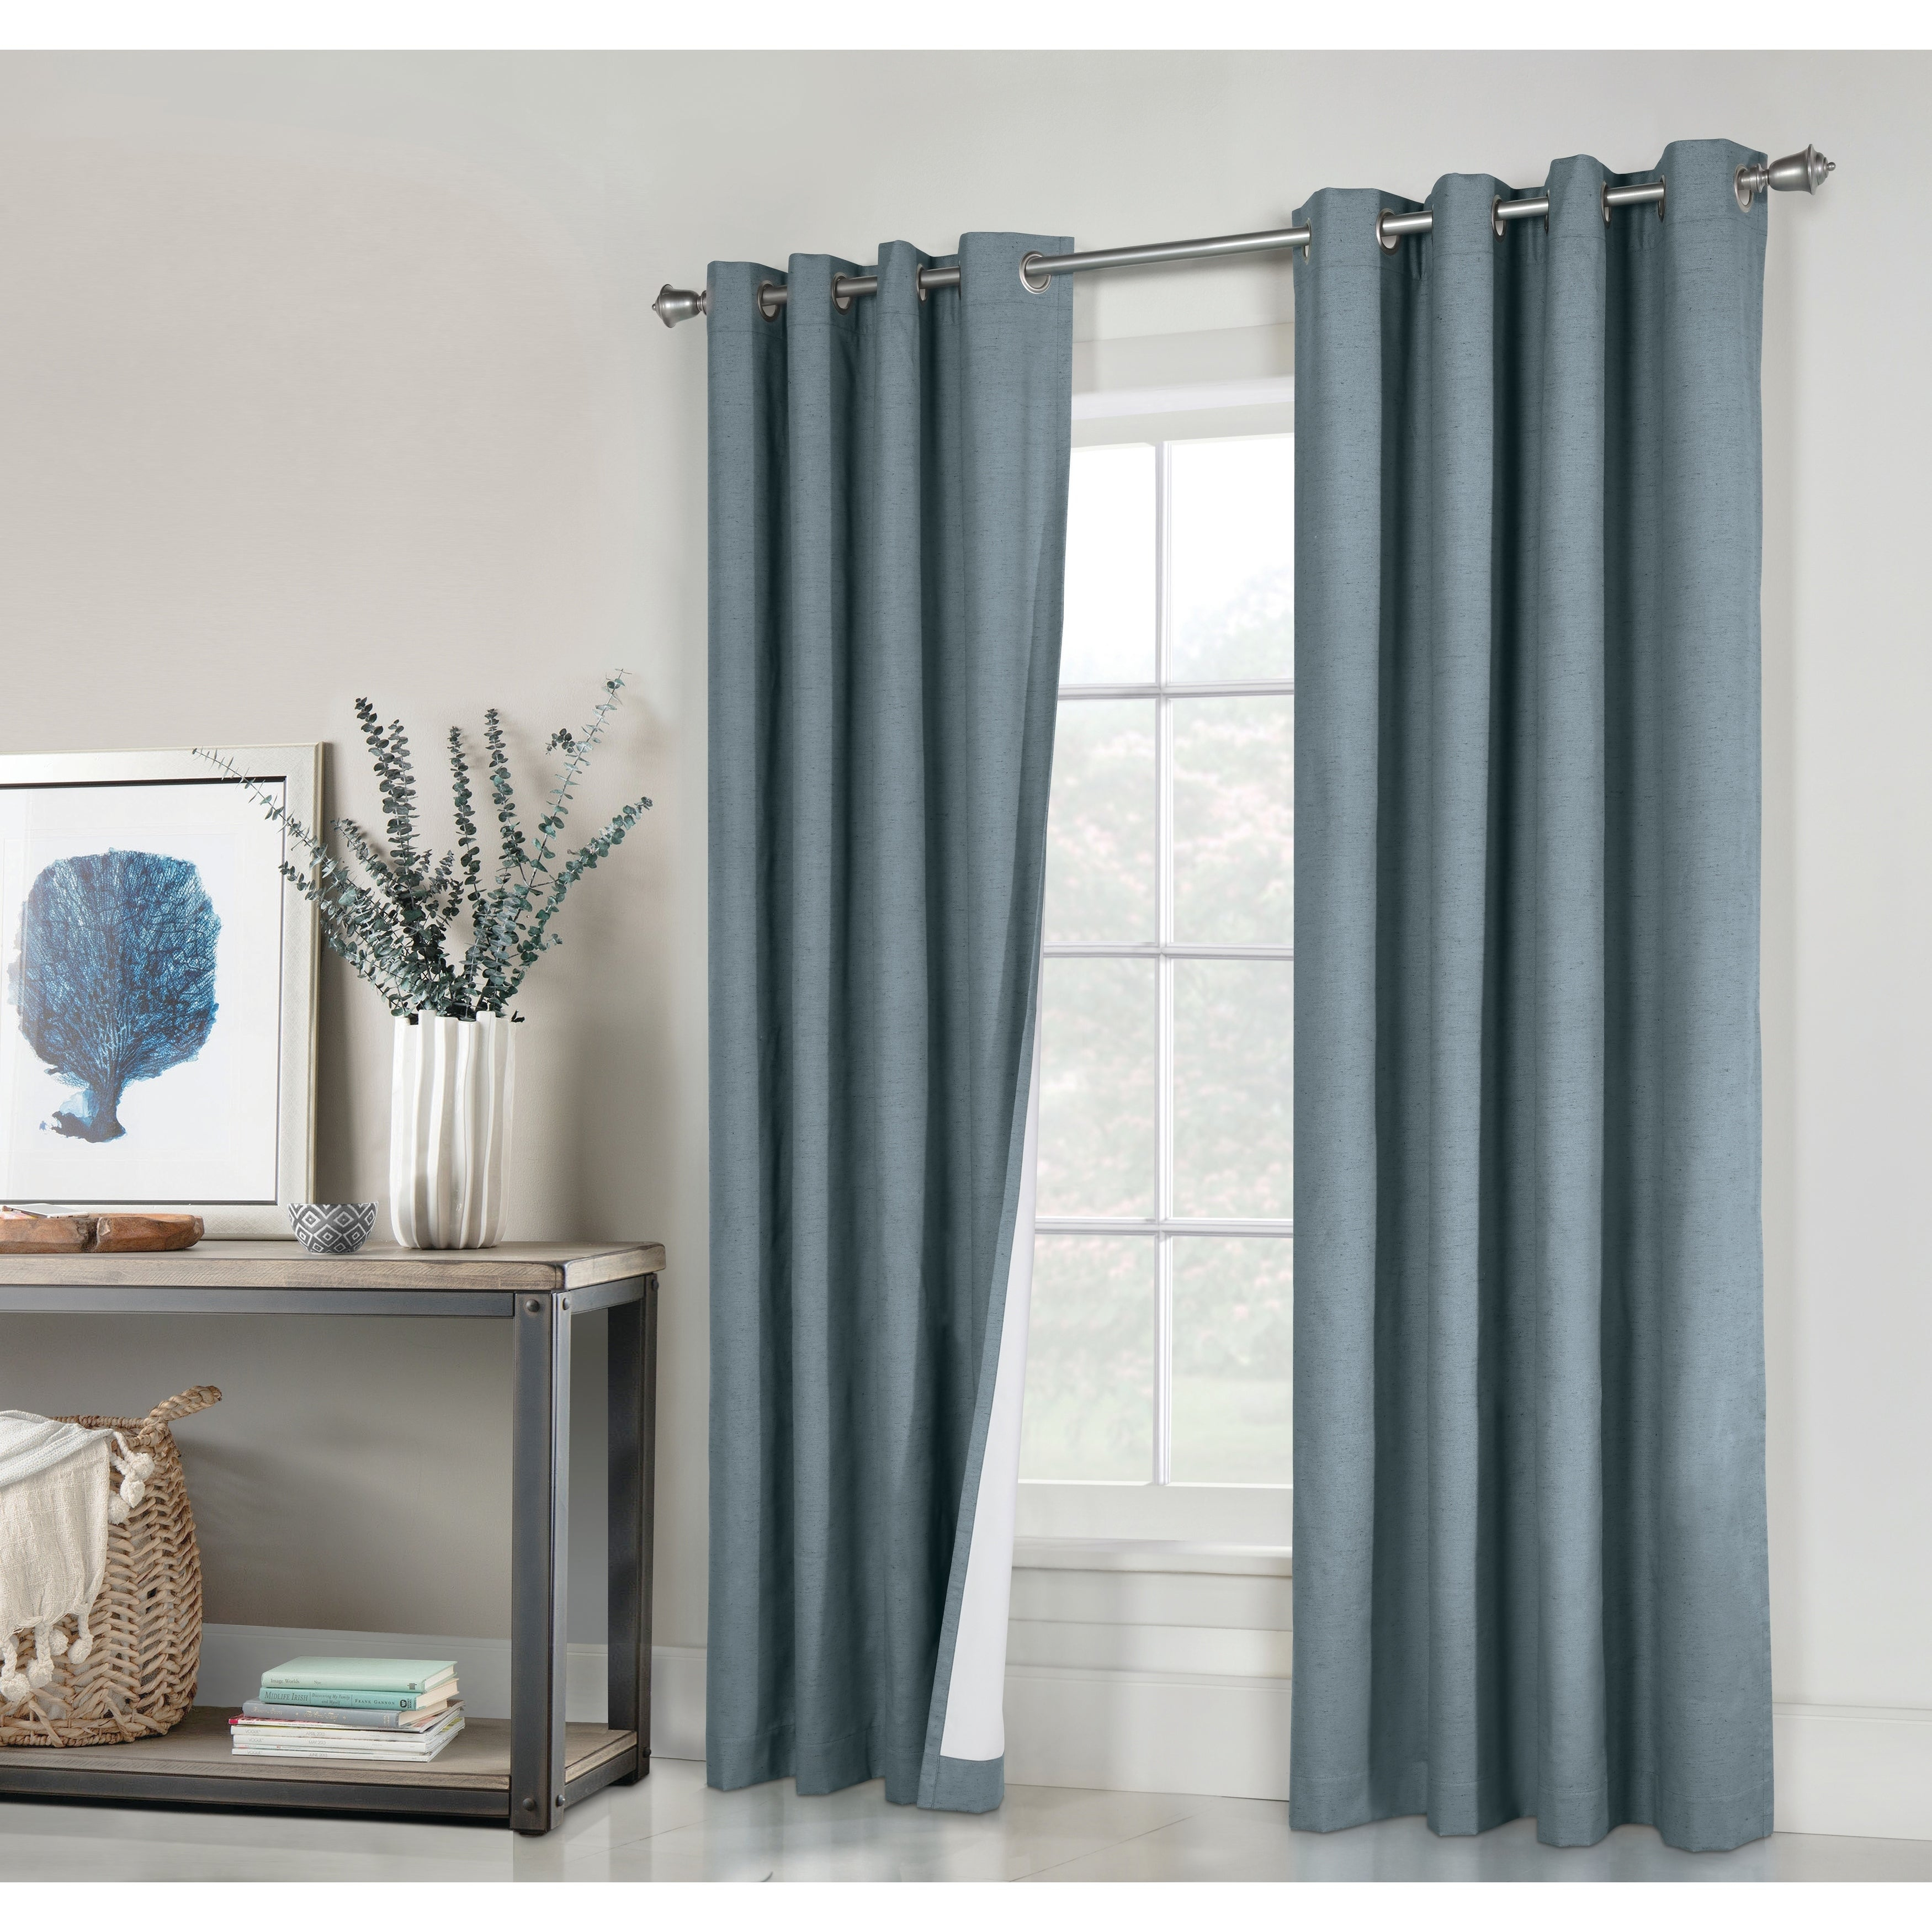 Ventura Blackout Curtain Panels Within Embossed Thermal Weaved Blackout Grommet Drapery Curtains (View 3 of 20)